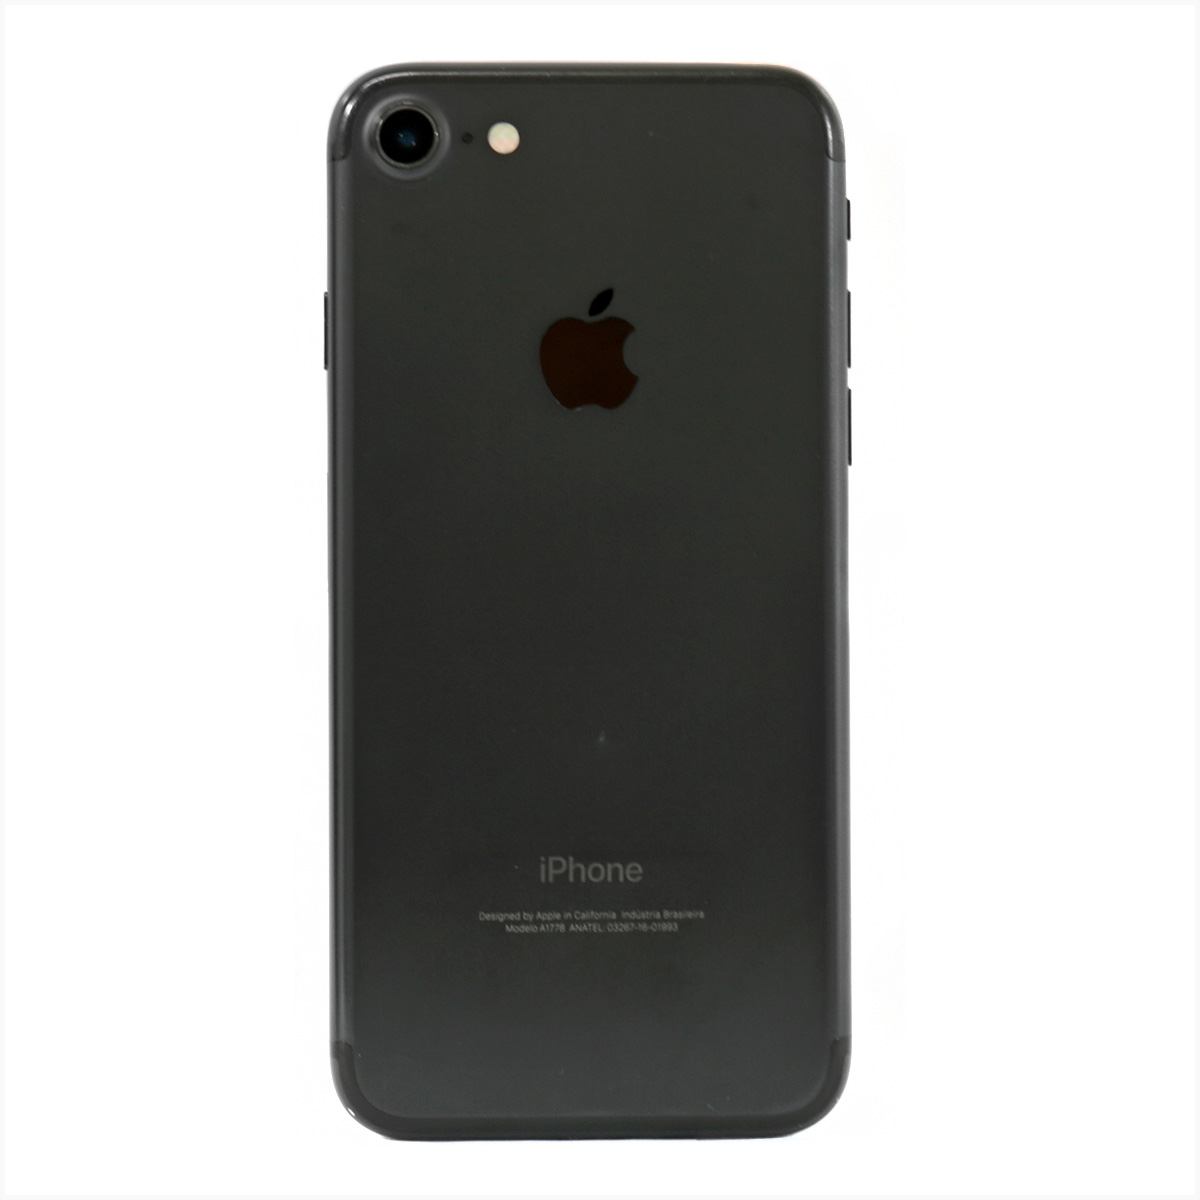 Iphone 7 apple A1778 32gb - usado